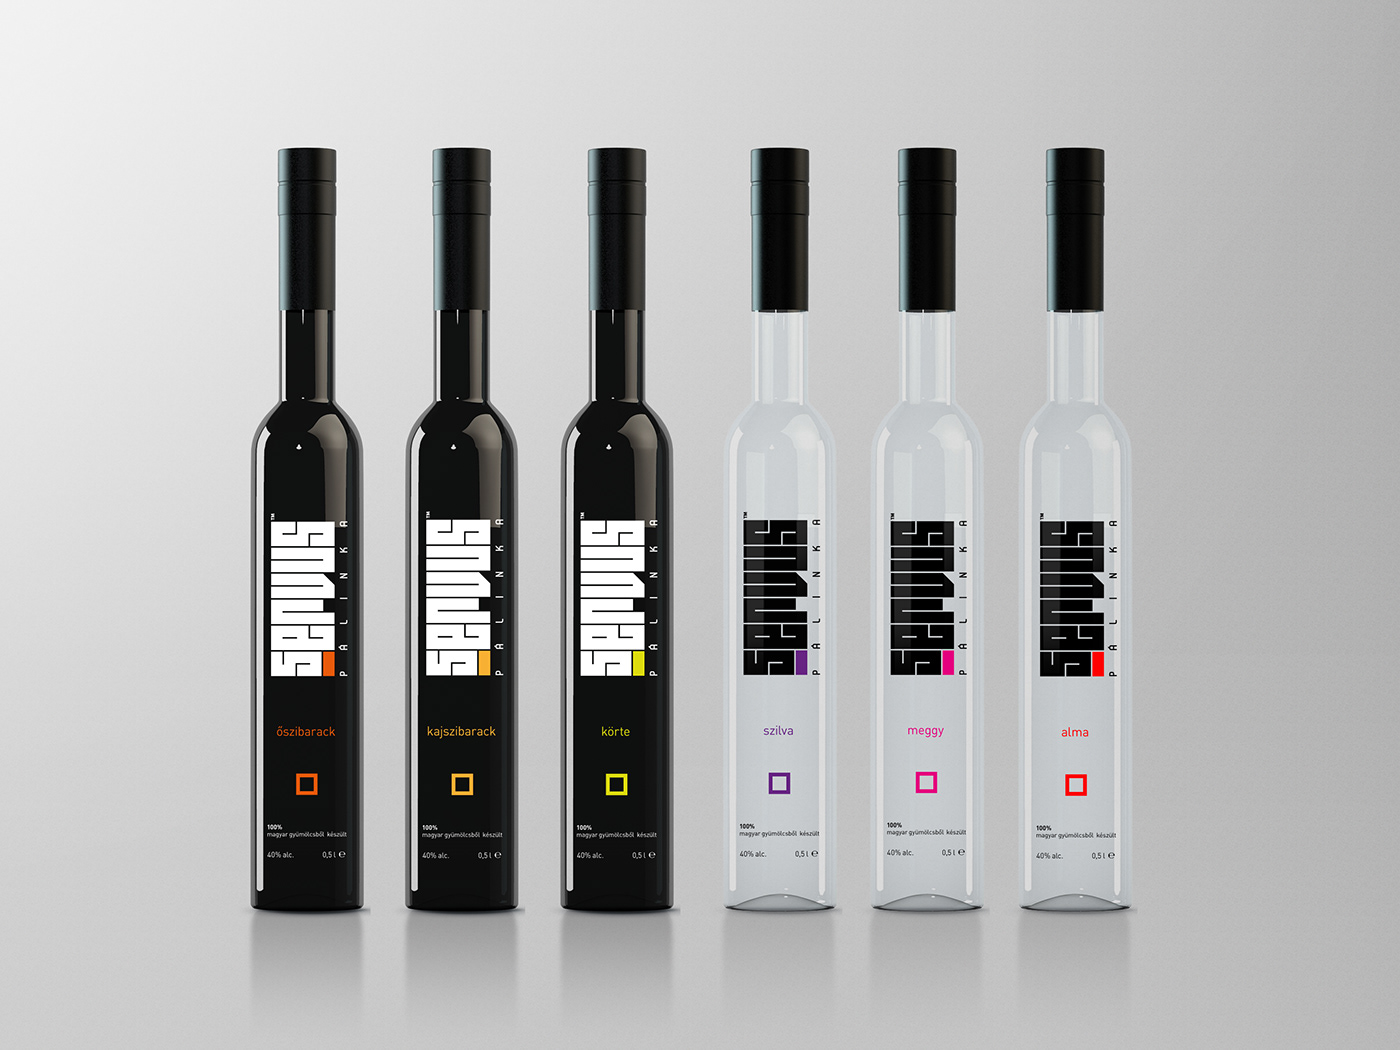 Servus™ palinka packaging & corporate identity